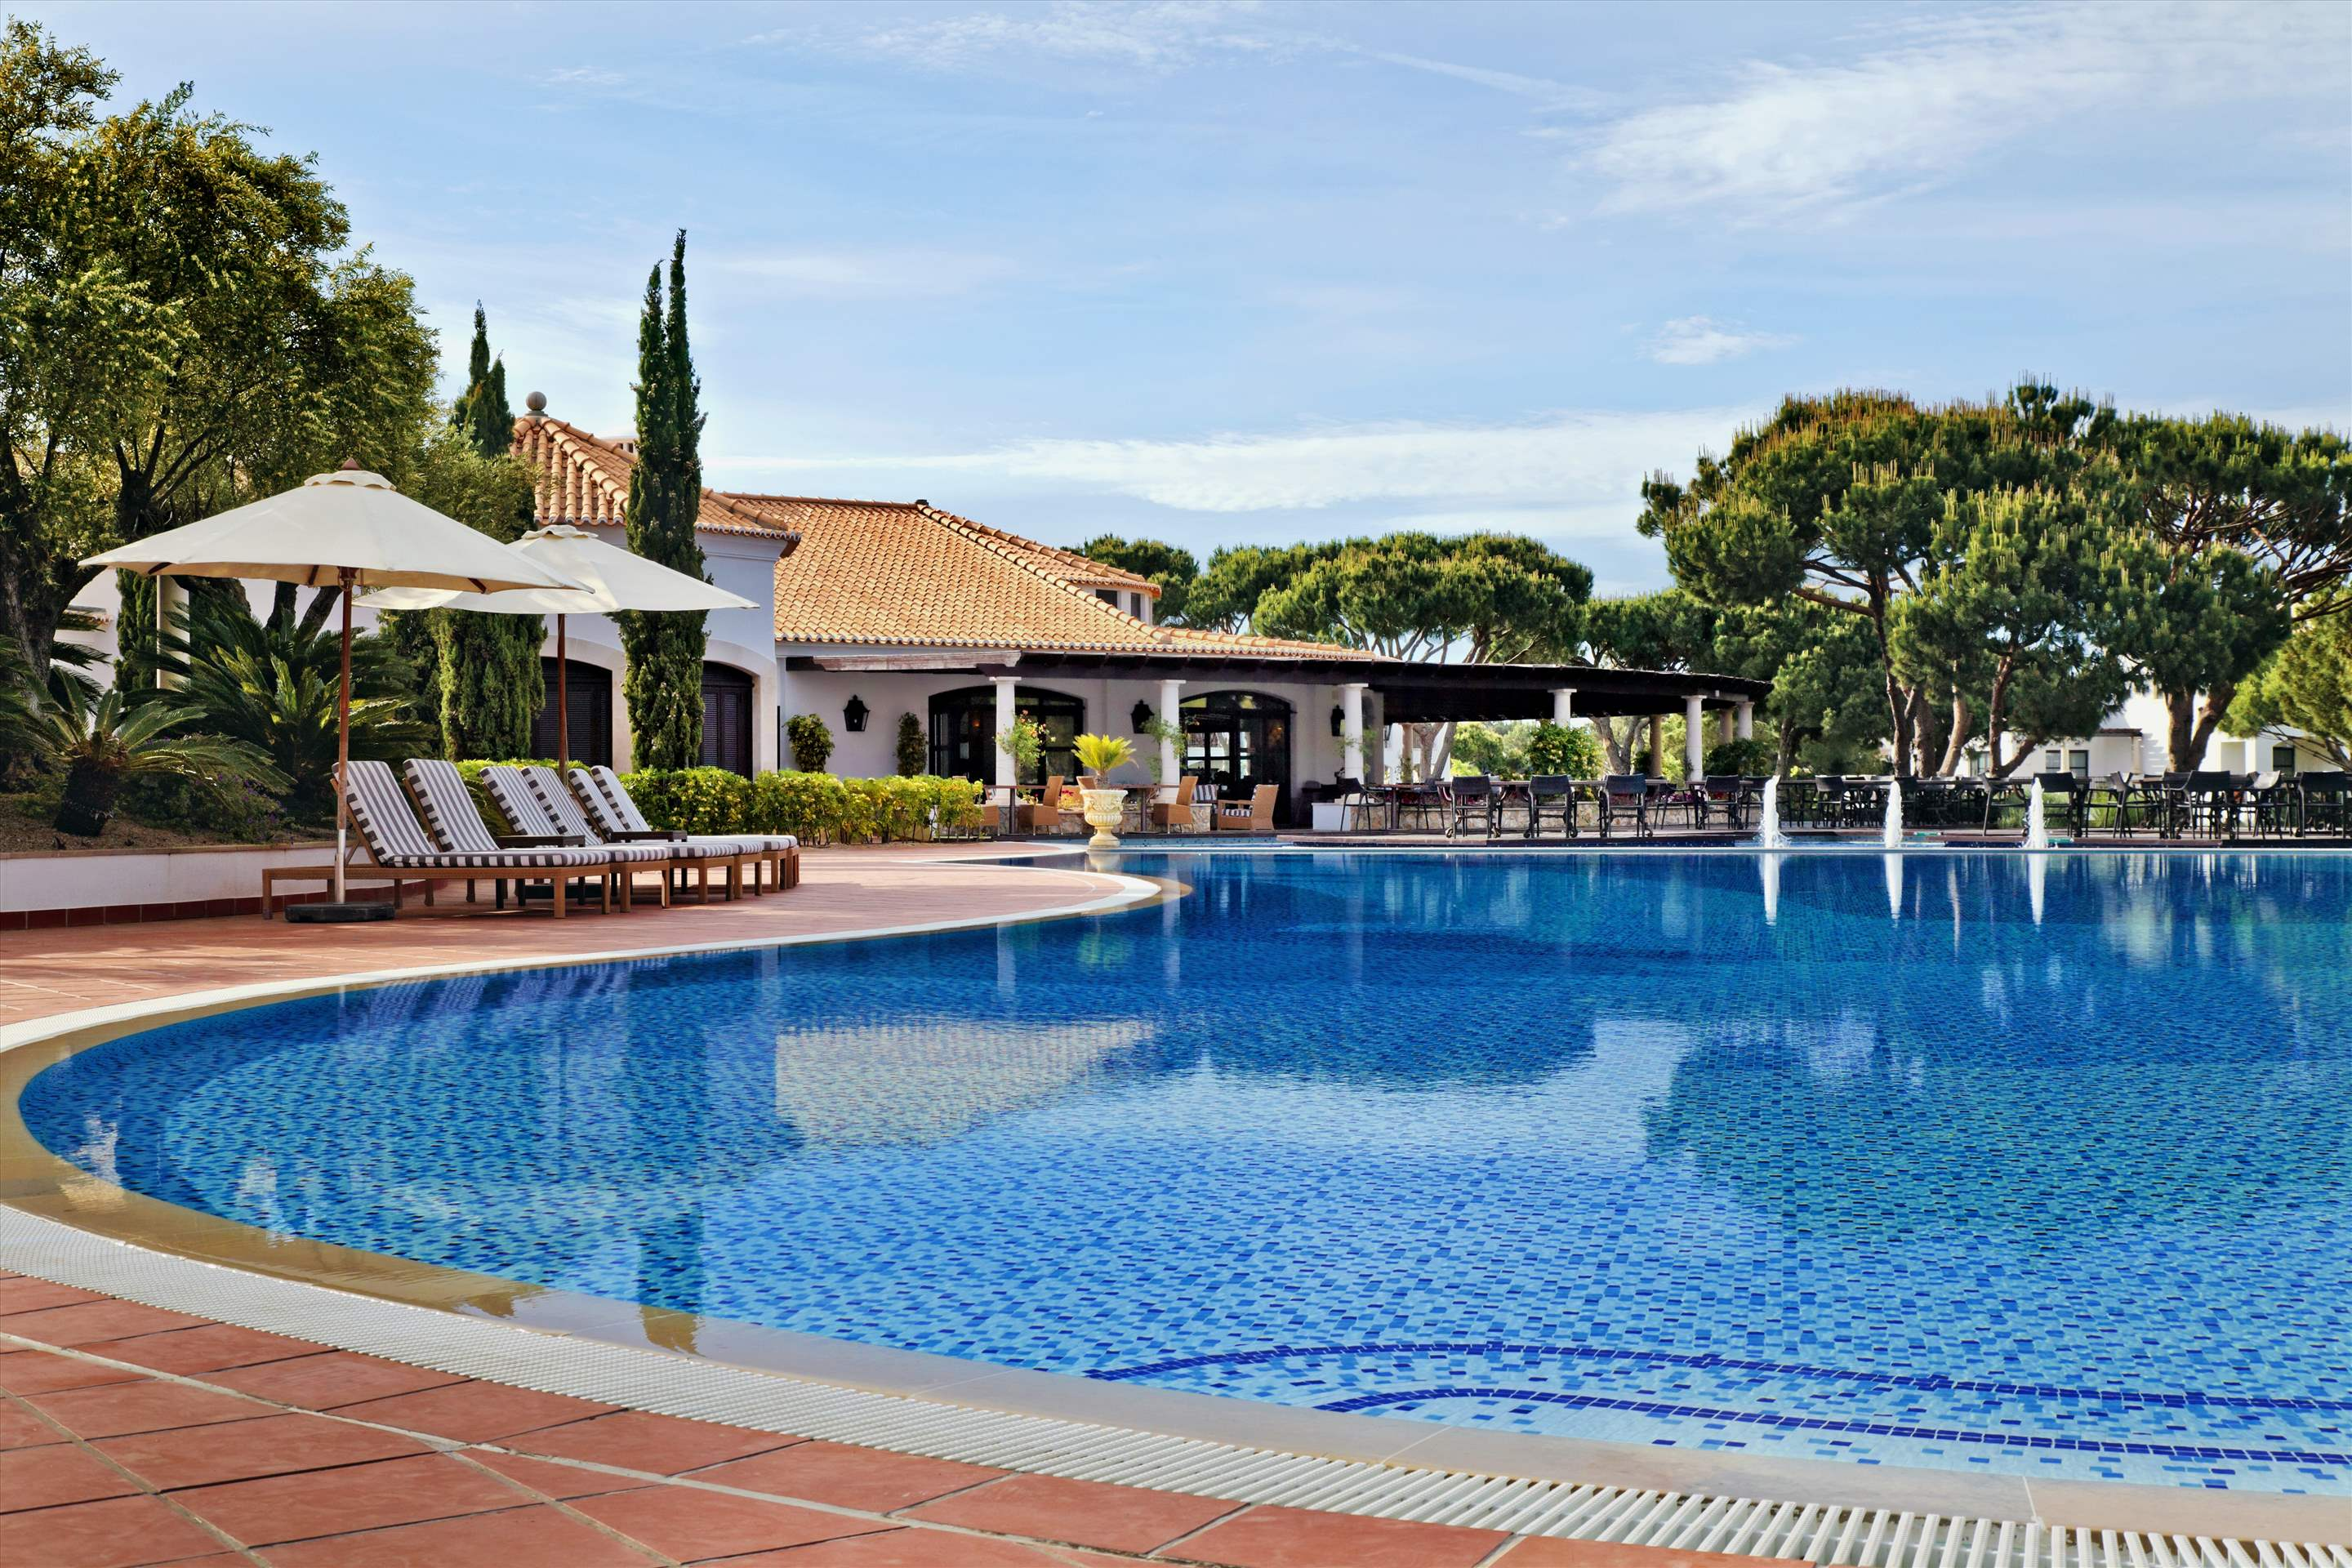 Pine Cliffs Residence, Penthouse 2 bed luxury suite, 2 bedroom apartment in Pine Cliffs Resort, Algarve Photo #2